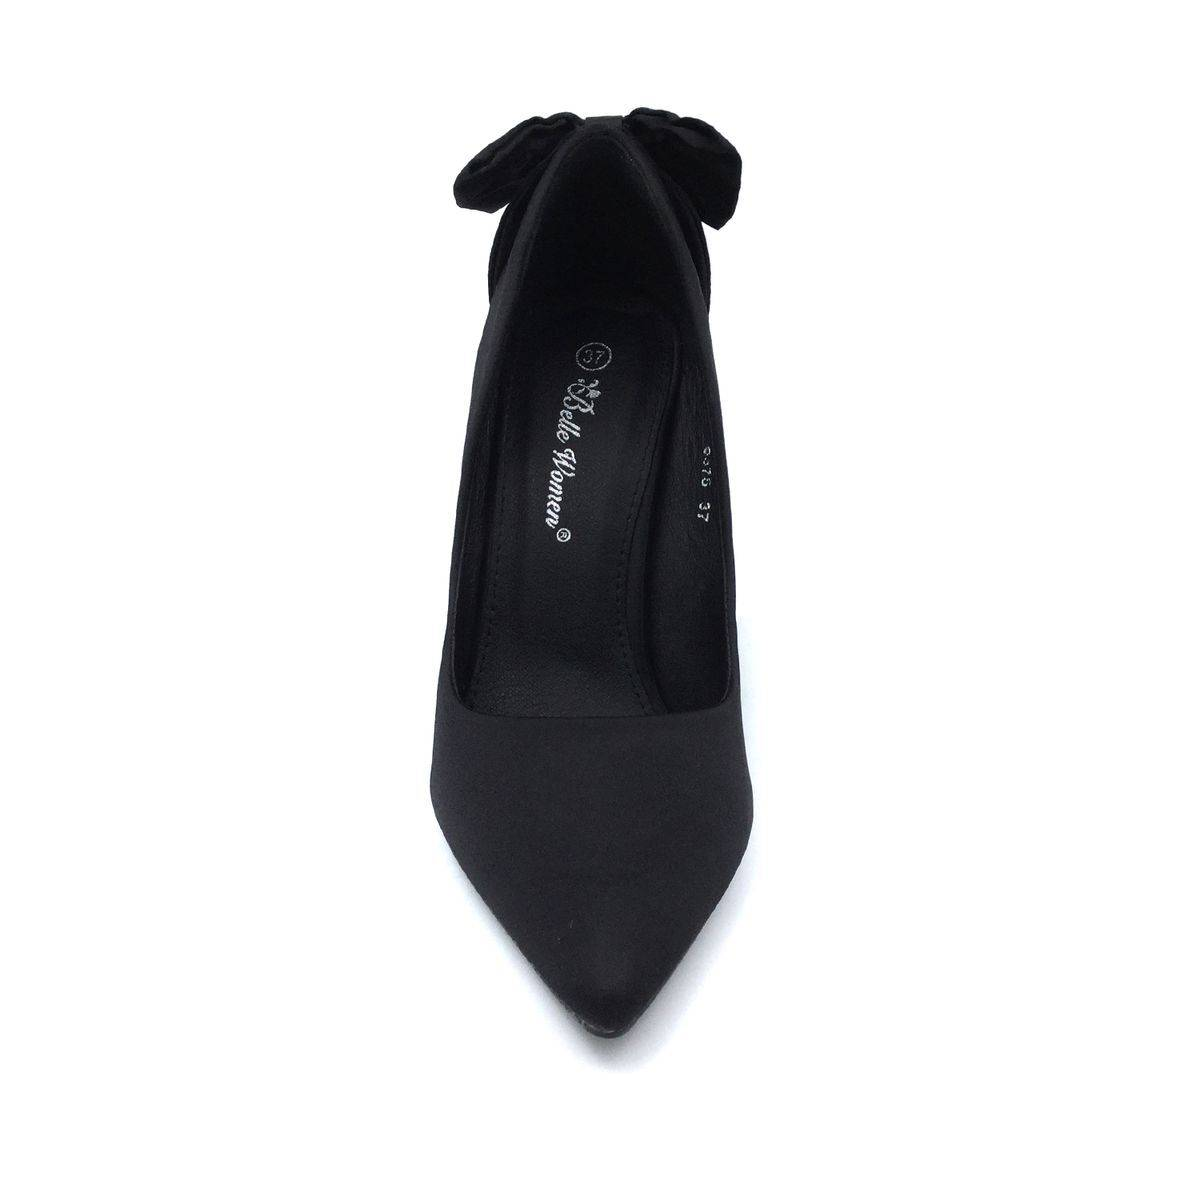 Women's High Heels With Bow Details Top Staka